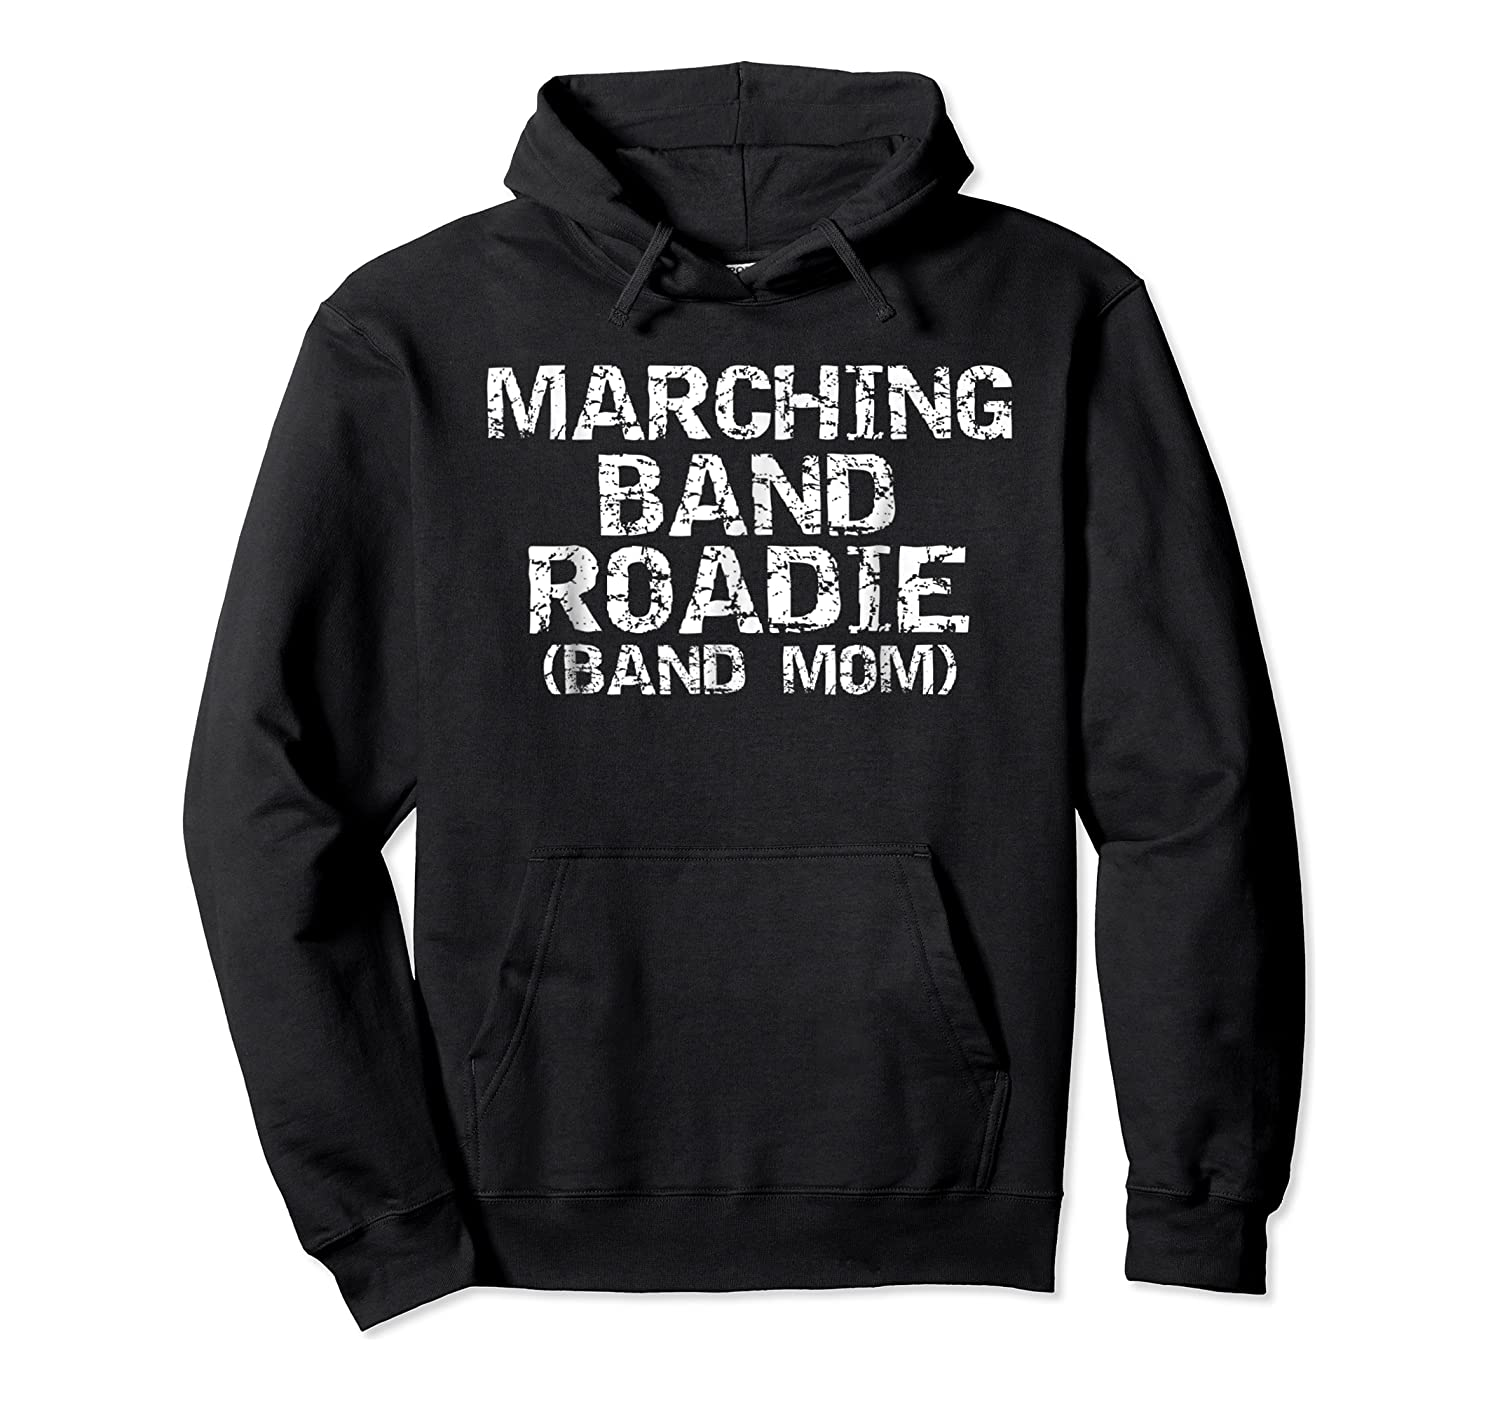 Marching Band Roadie Band Mom Funny Mother Shirts Unisex Pullover Hoodie